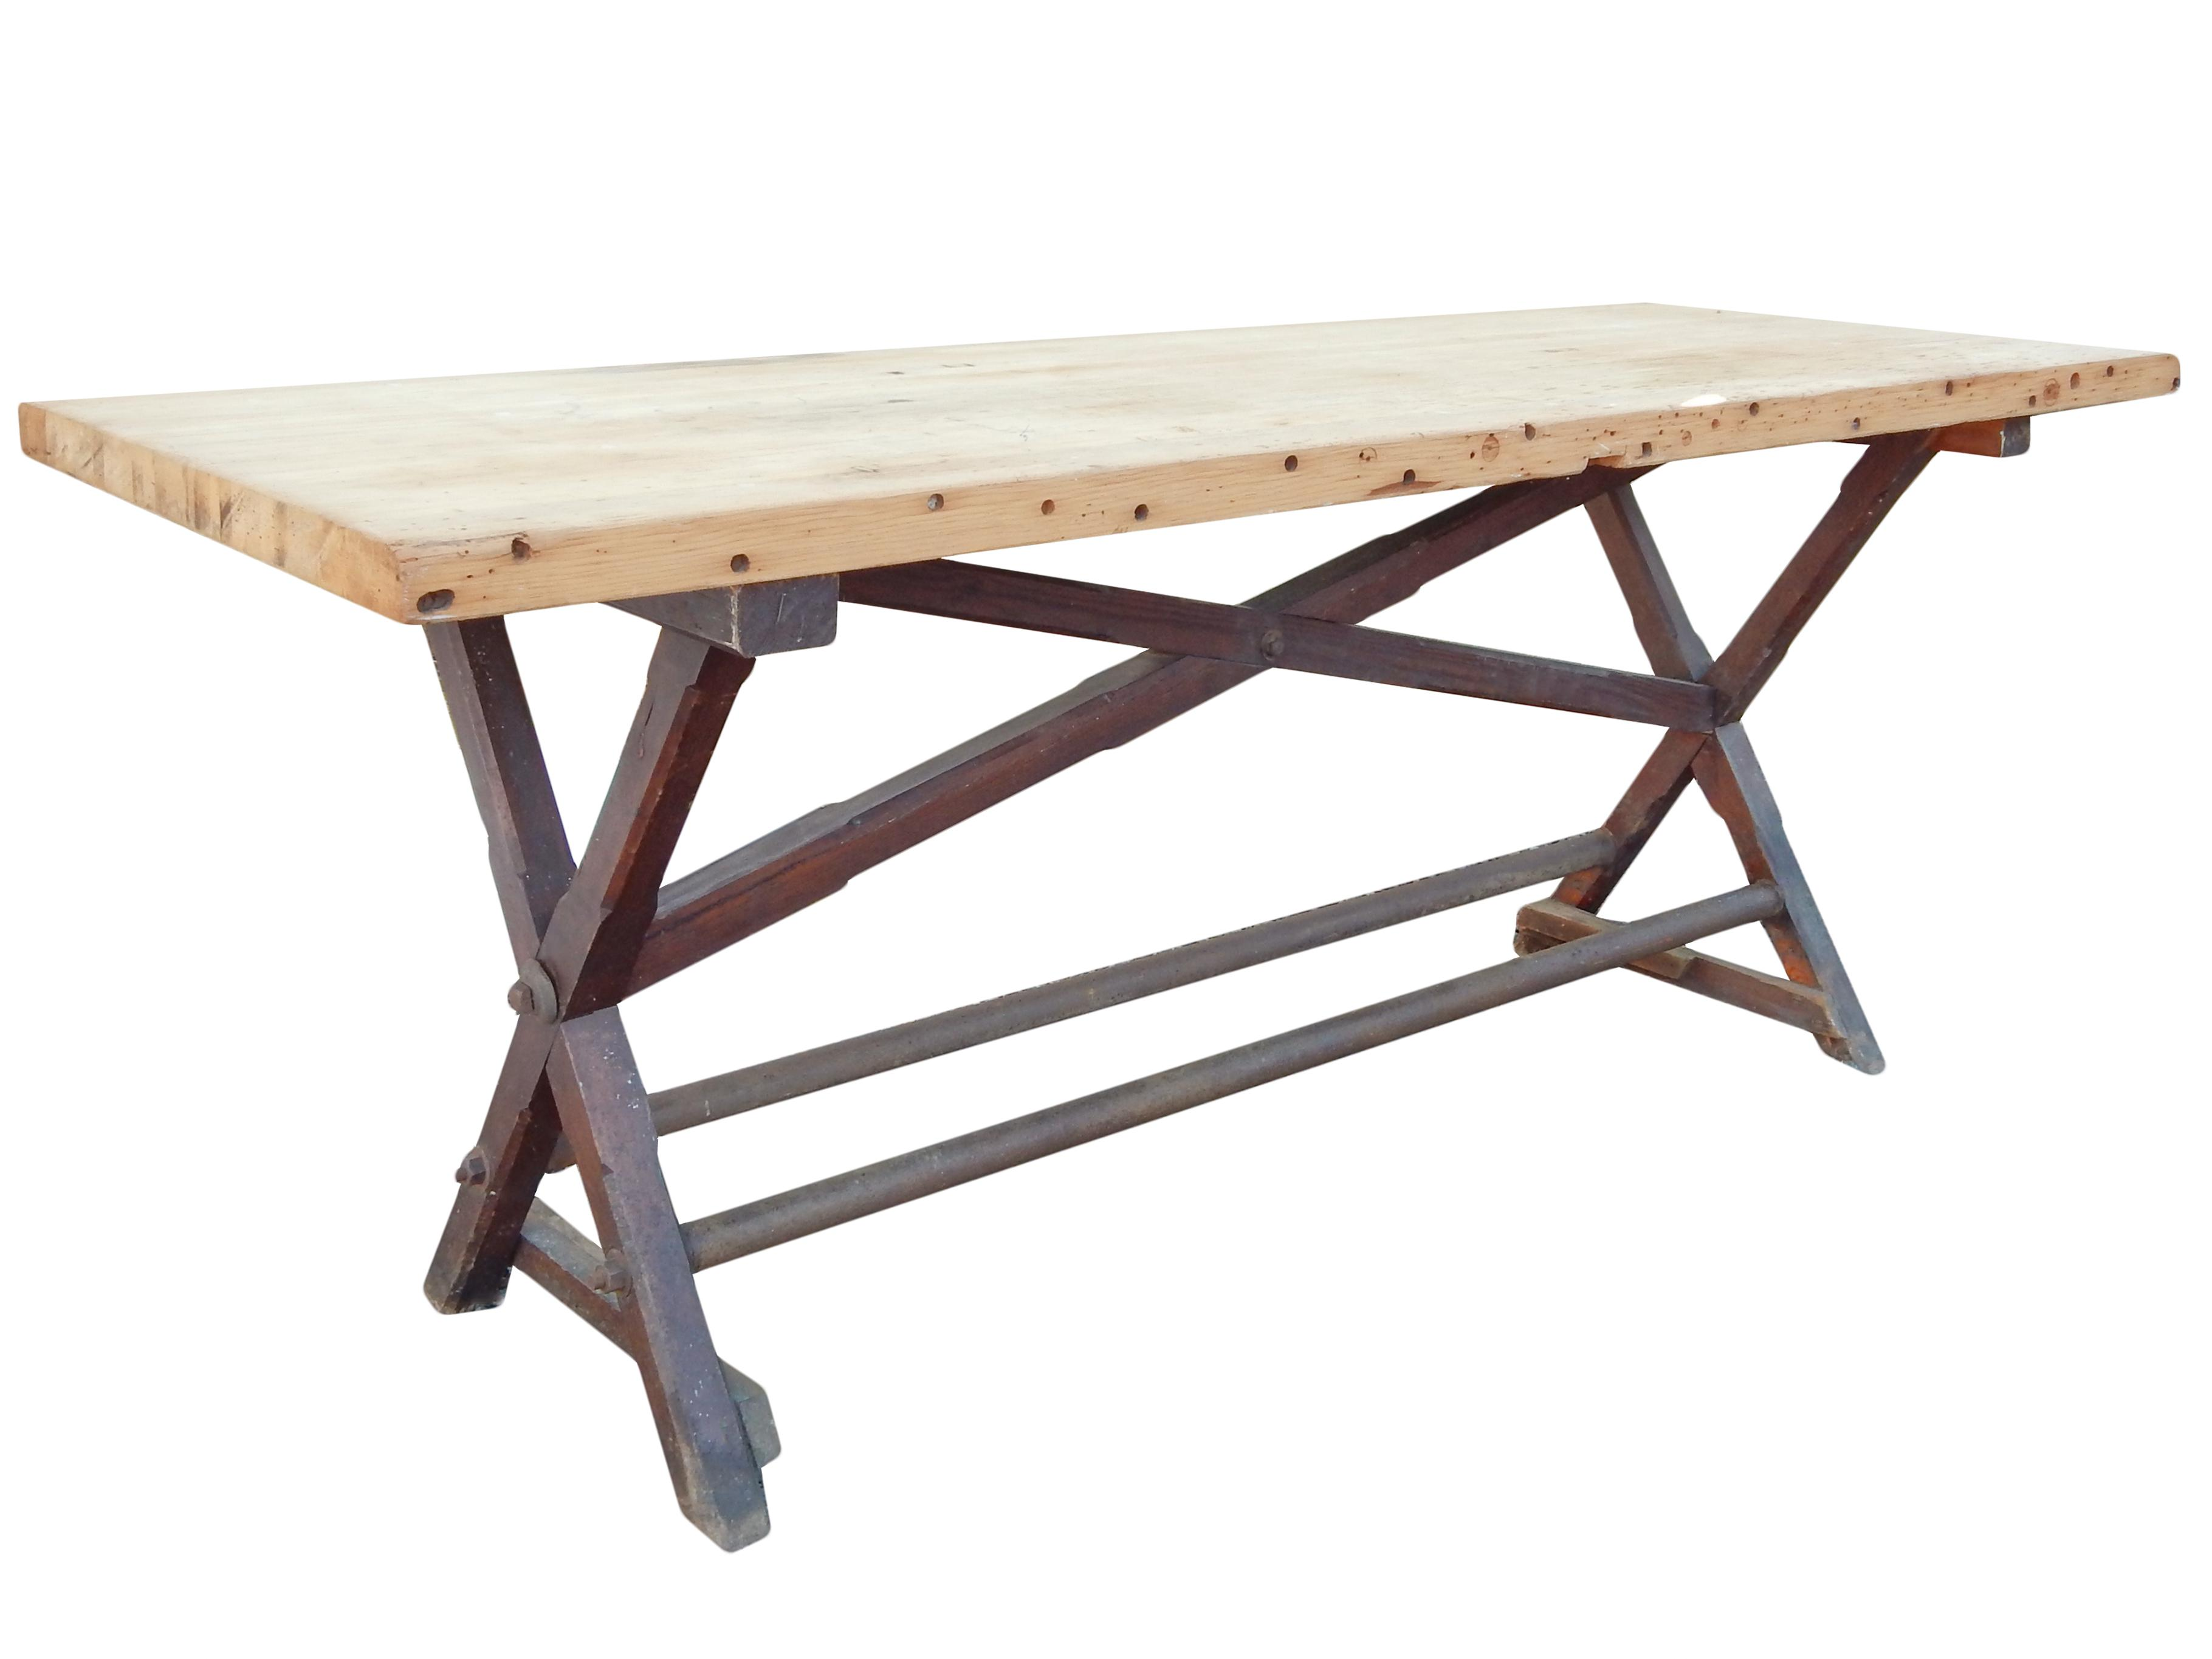 world-class tall work table | decaso